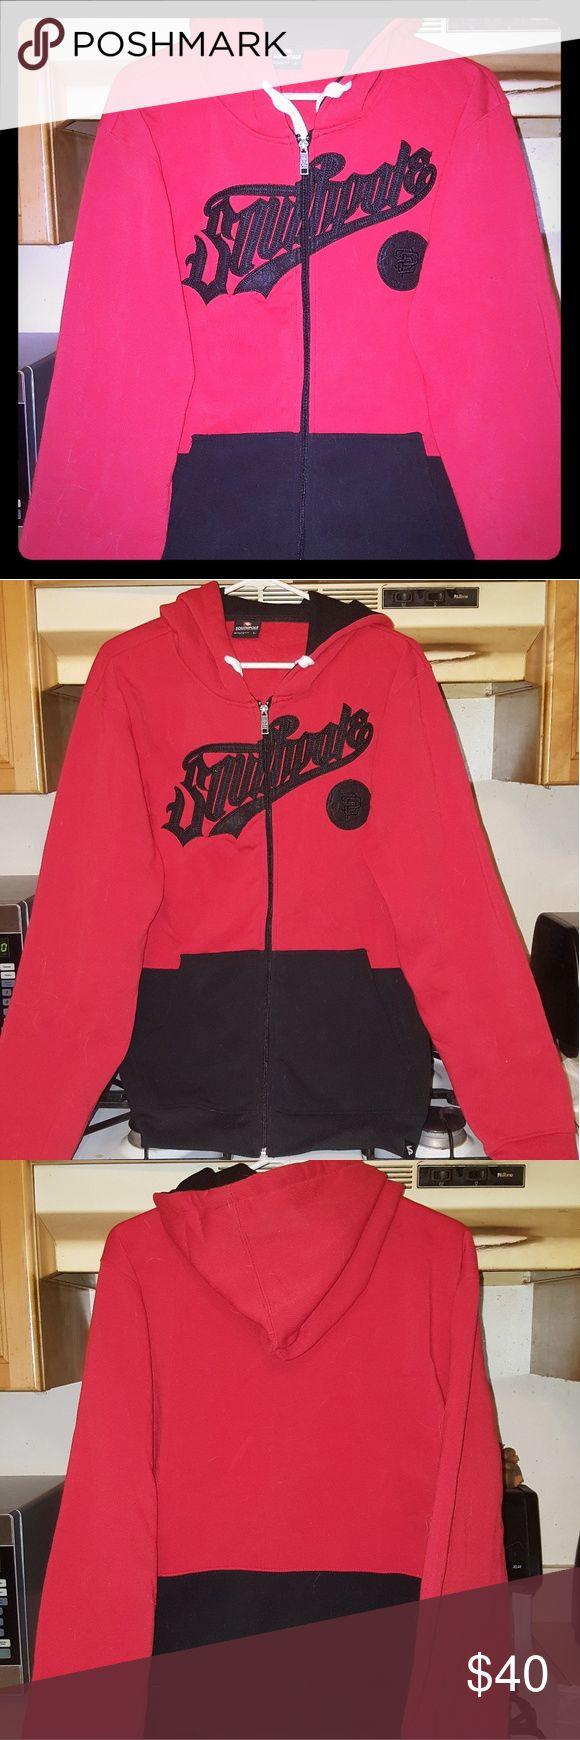 Women's SouthPole Hoodie Pre-Owned/Excellent Condition  Women's Heavy Long Sleeved Full Zippered Hoodie Jacket  Brand: SouthPole Size: Large  Color: Red & Black South Pole Tops Sweatshirts & Hoodies